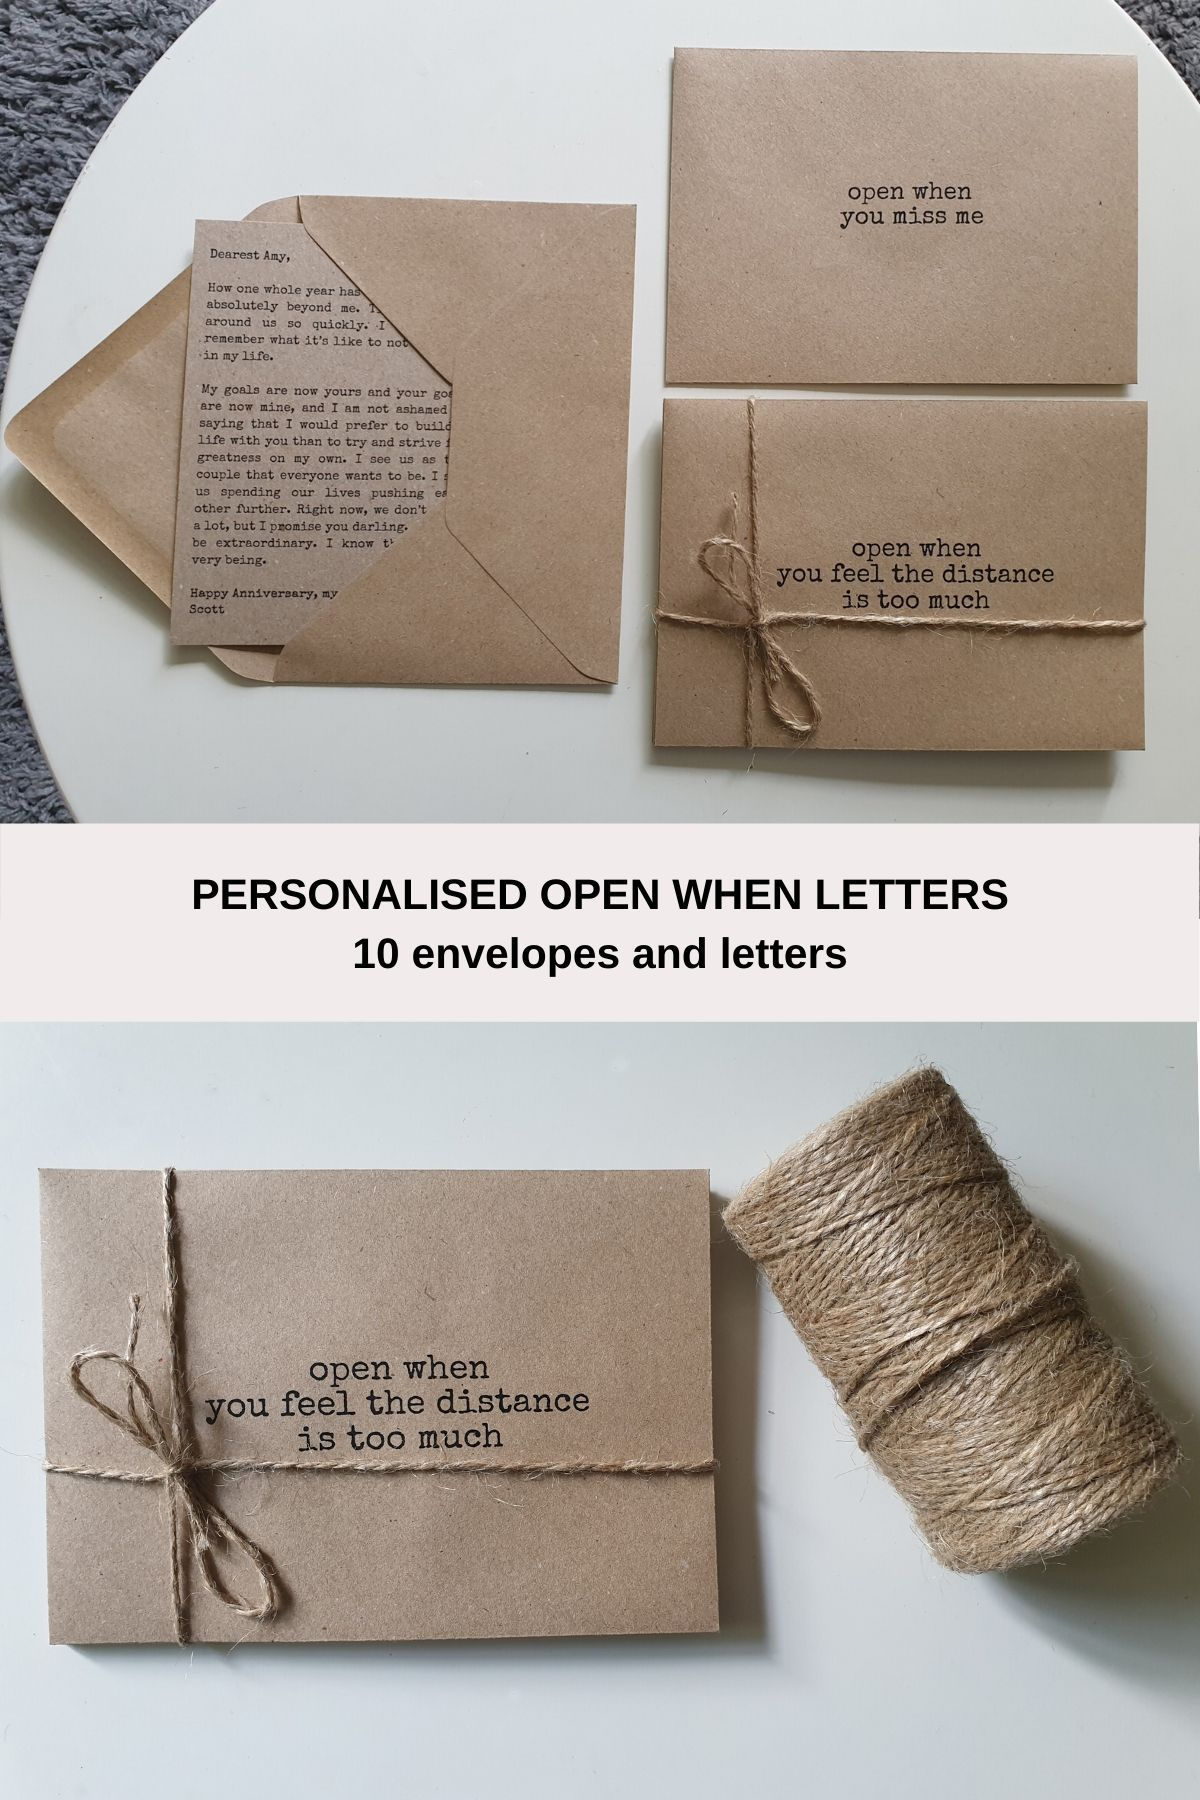 Personalised Open when letters